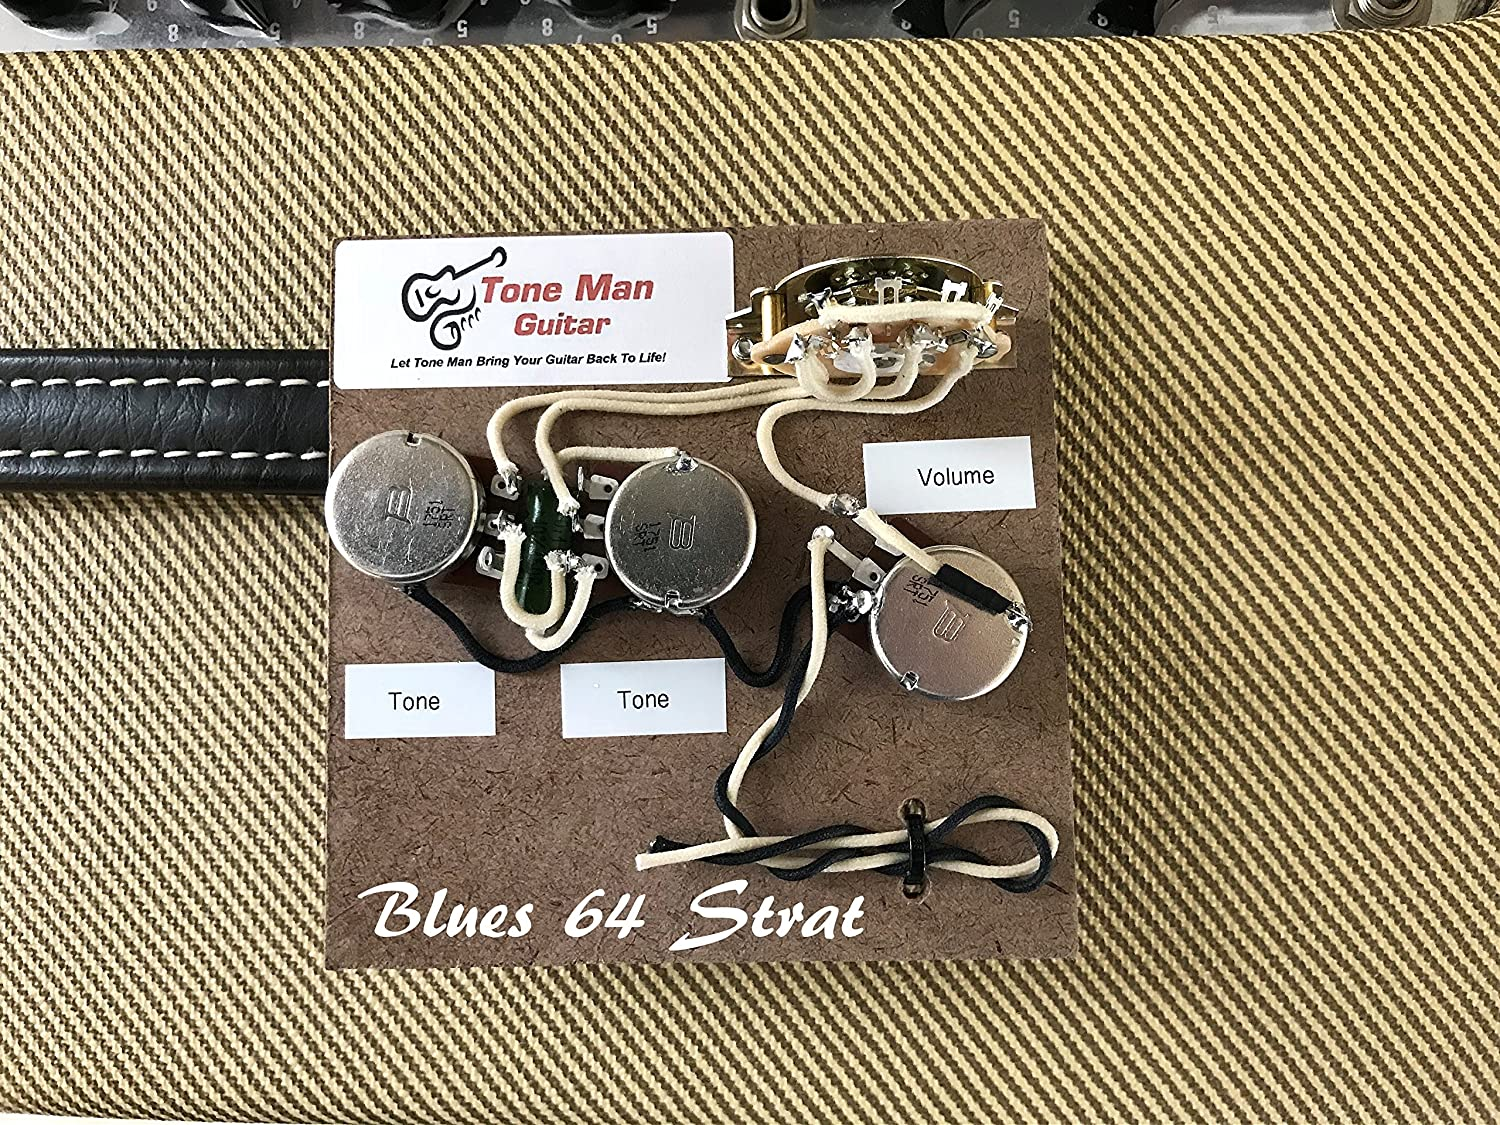 The Blues 64 Sound Strat Prewired Wiring Upgrade Kit For 2 Tone Caps Fender Stratocaster Musical Instruments